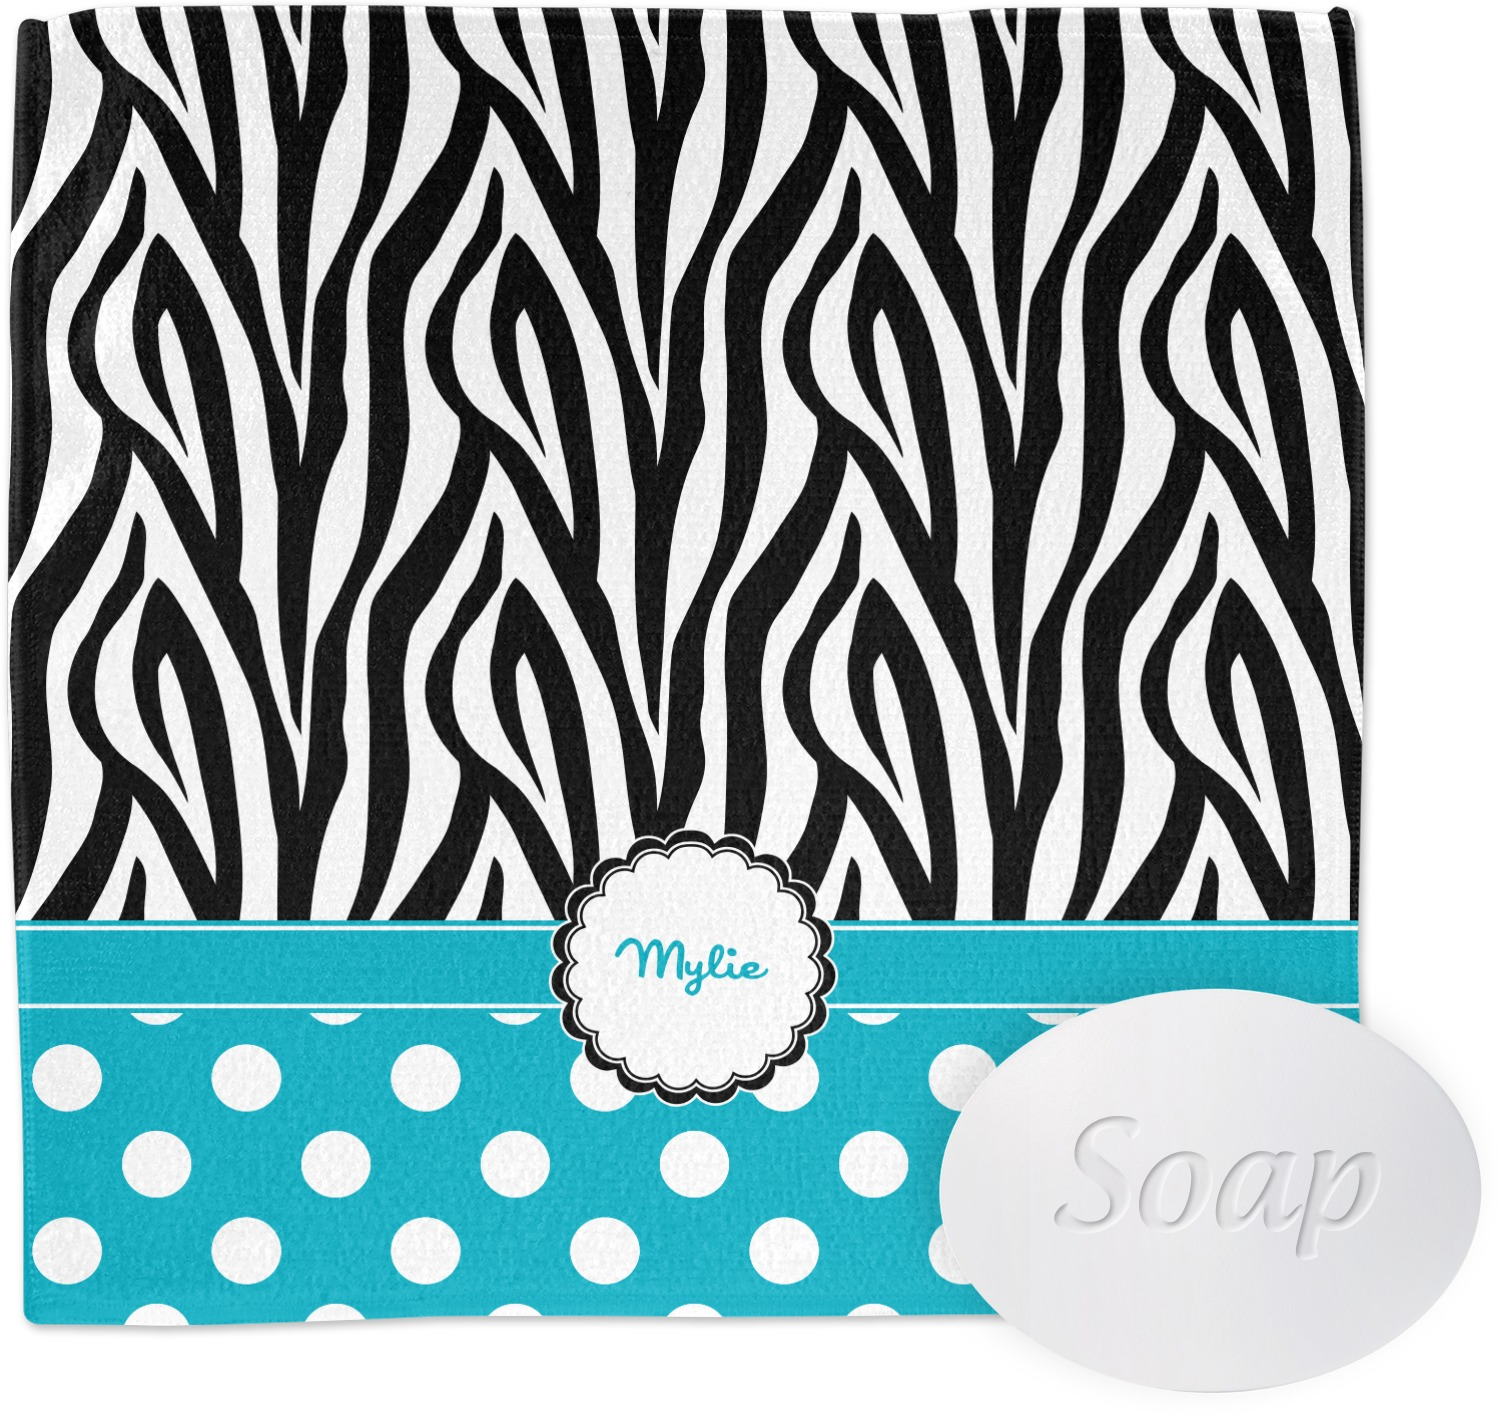 Zebra print bathroom set